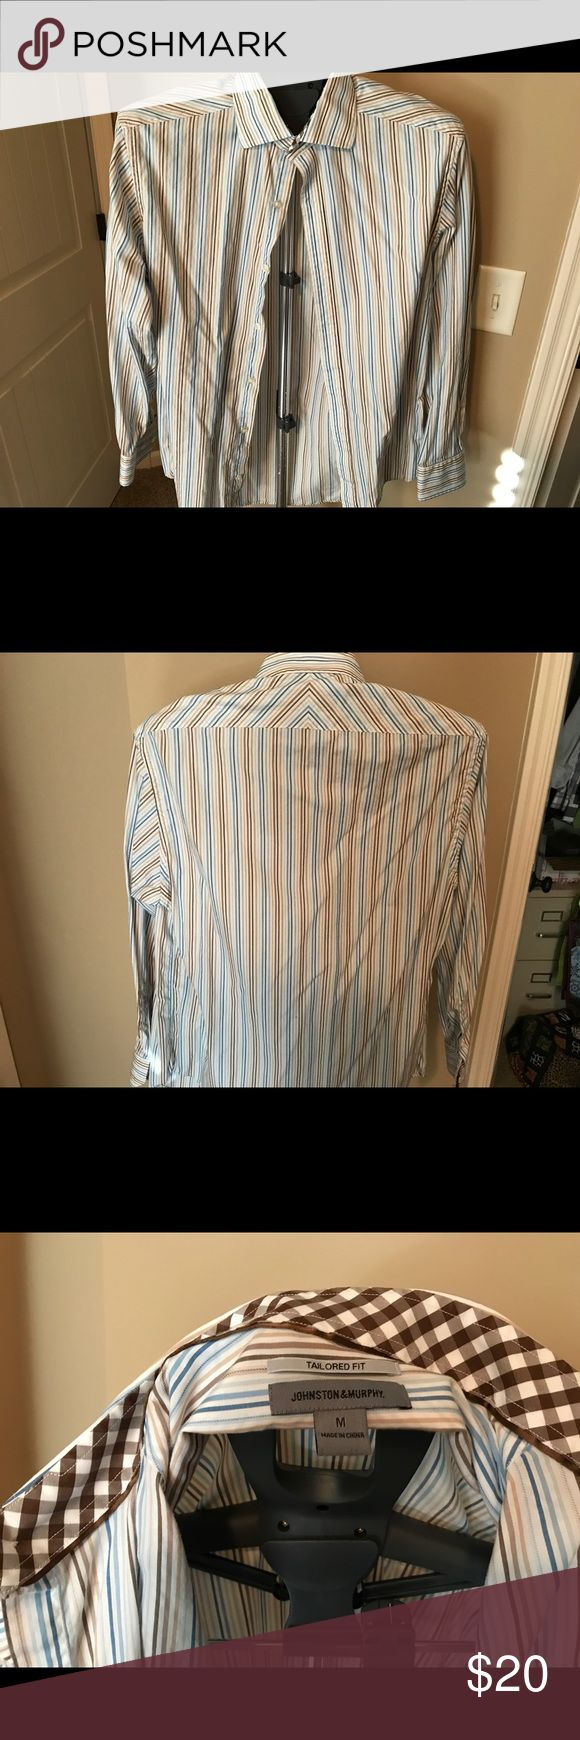 Johnston & Murphy tailored fit shirt Like new Men's Johnston & Murphy button down shirt. Blue brown tan stripes. Size medium Johnston & Murphy Shirts Casual Button Down Shirts